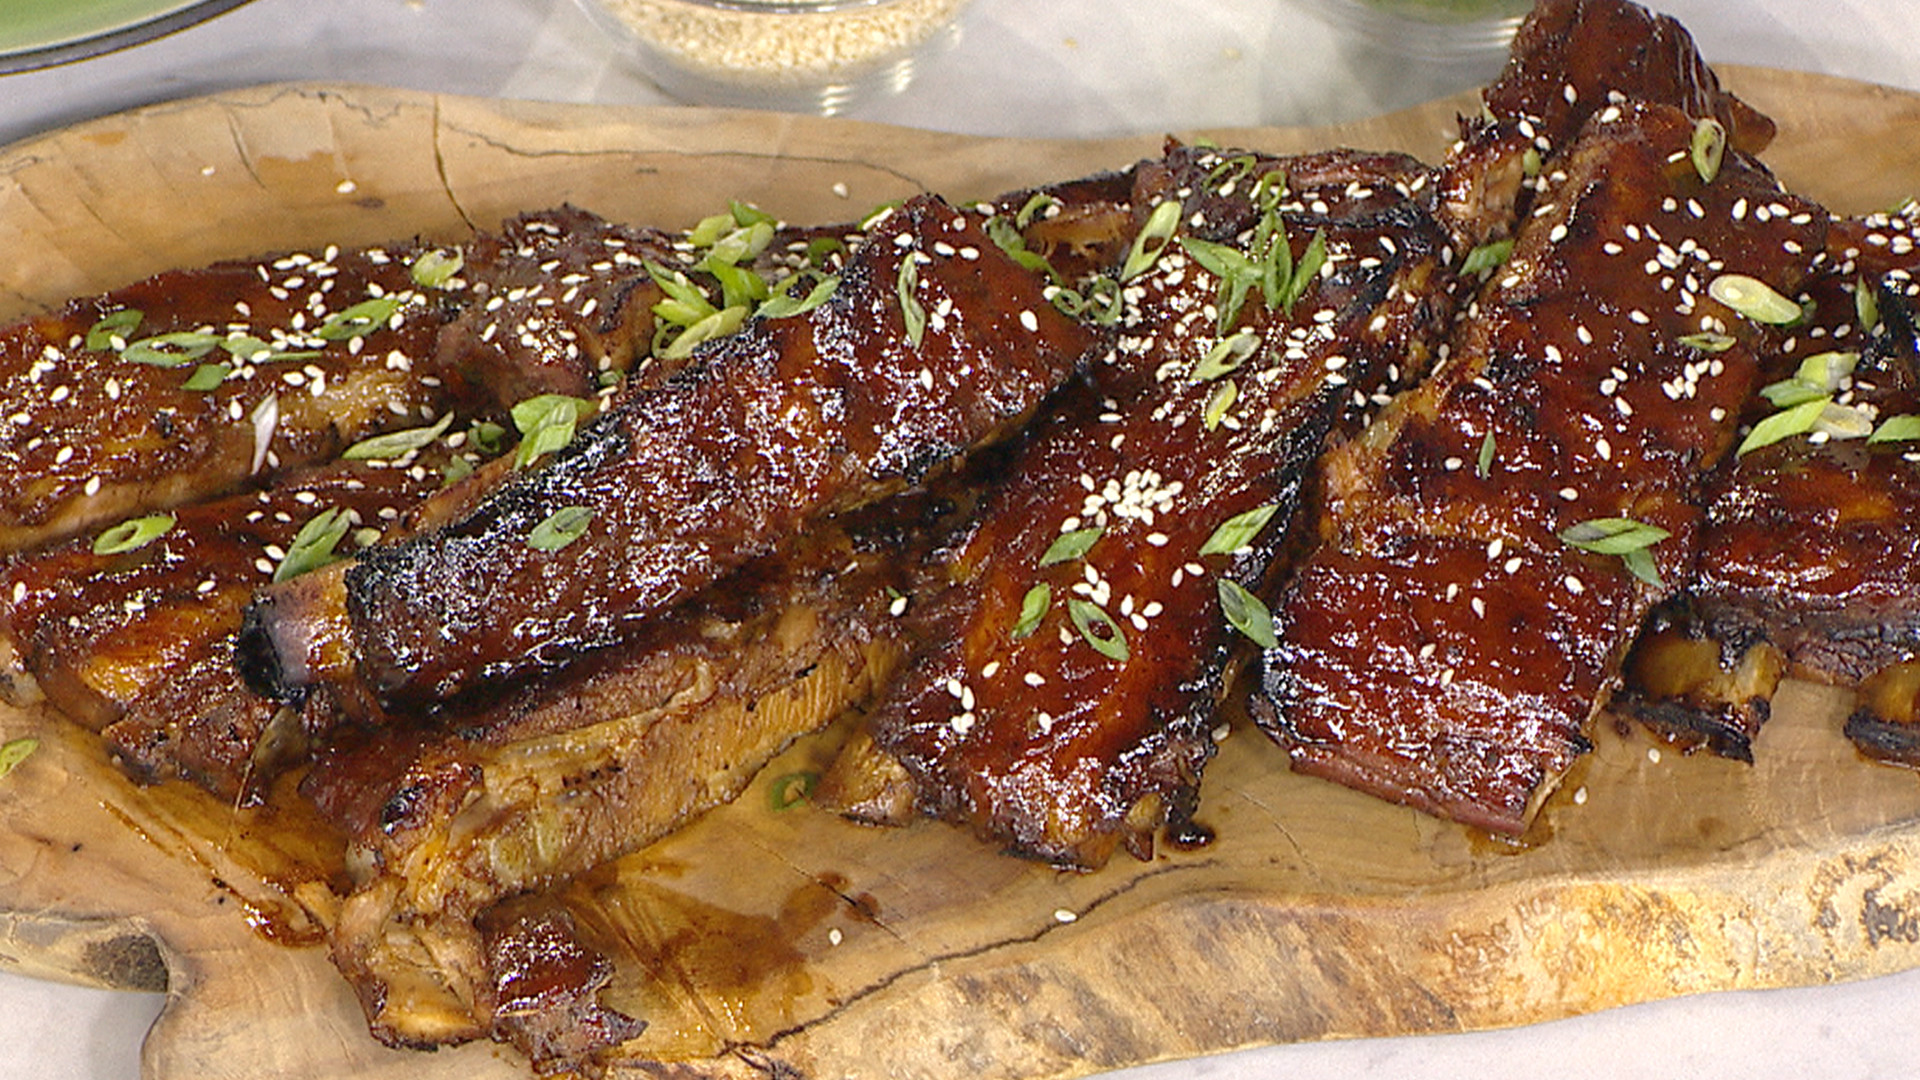 Chinese Pork Ribs  For takeout Make Chinese style marinated pork ribs at